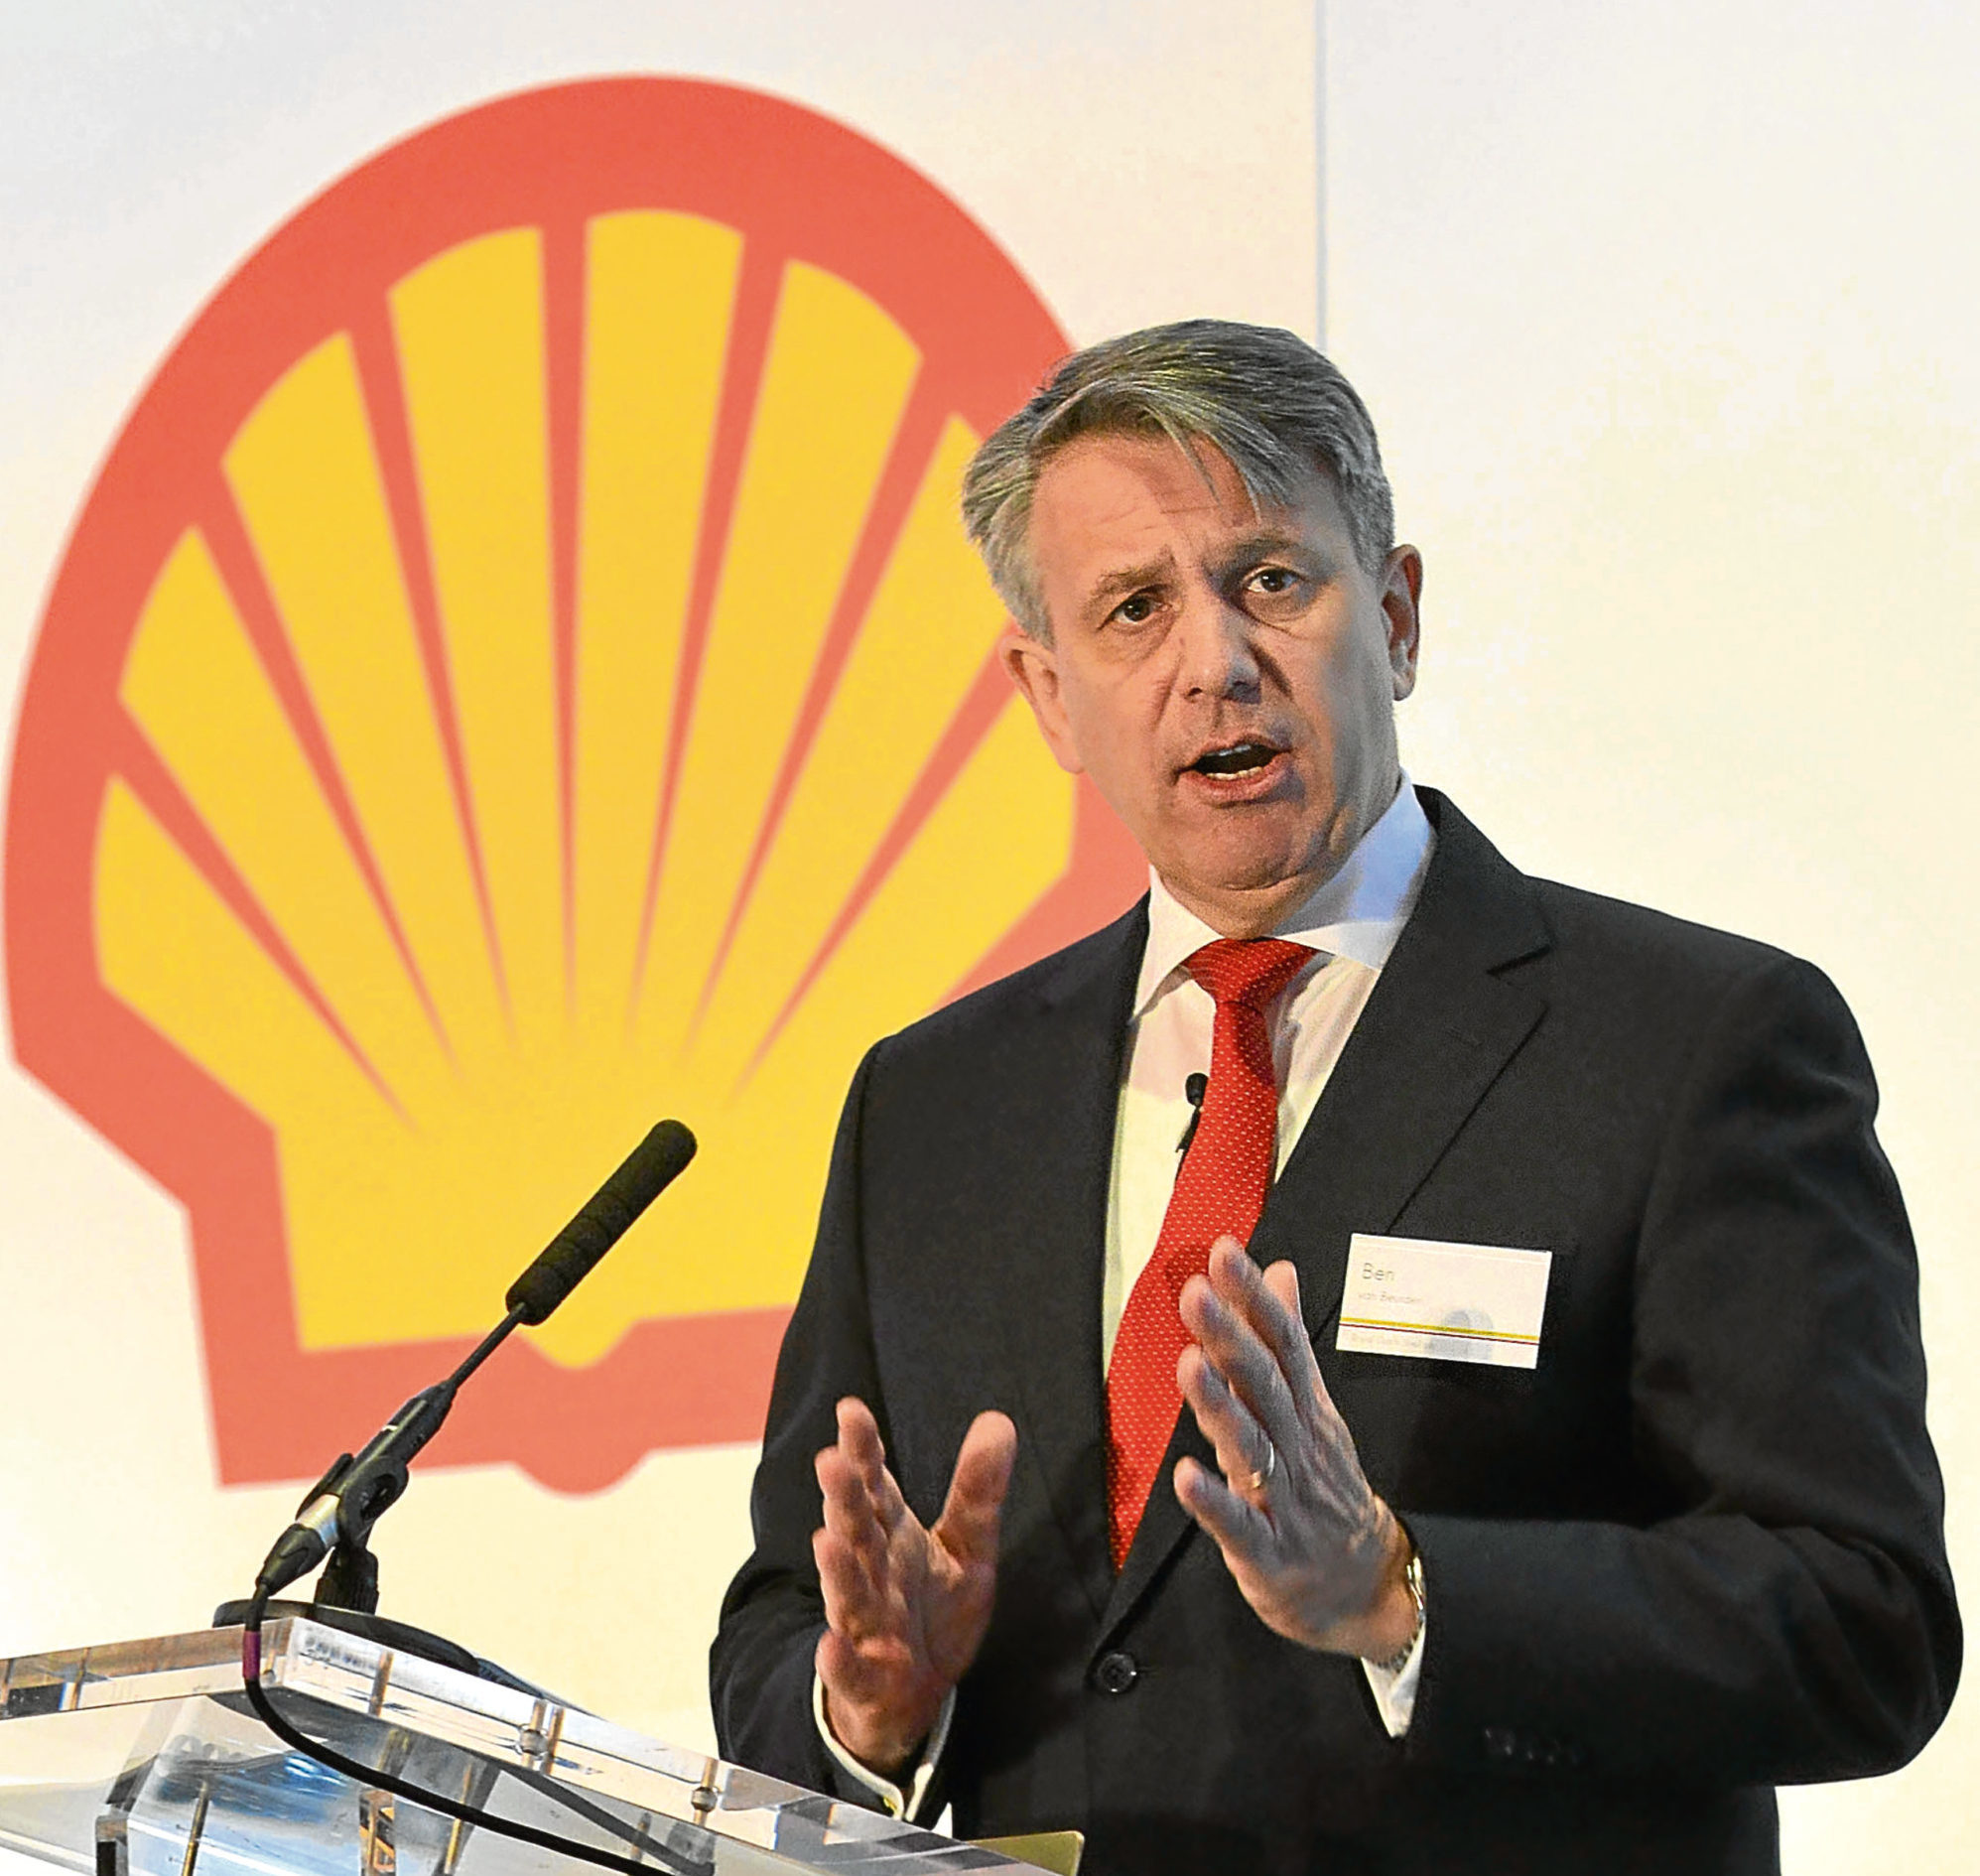 Newscast handout photo dated 29/01/15 of Royal Dutch Shell's Chief executive Ben van Beurden, who has pocketed a near-£800,000 pay rise, lifting his annual package close to £8 million after resurgent oil prices boosted group profits. PRESS ASSOCIATION Photo. Issue date: Thursday March 15, 2018. Mr Van Beurden saw his total pay packet climb 11% to £7.811 million last year, with his annual bonus jumping by a quarter to £2.6 million. See PA story CITY Shell. Photo credit should read: Daniel Lynch/Newscast/PA Wire  NOTE TO EDITORS: This handout photo may only be used in for editorial reporting purposes for the contemporaneous illustration of events, things or the people in the image or facts mentioned in the caption. Reuse of the picture may require further permission from the copyright holder.